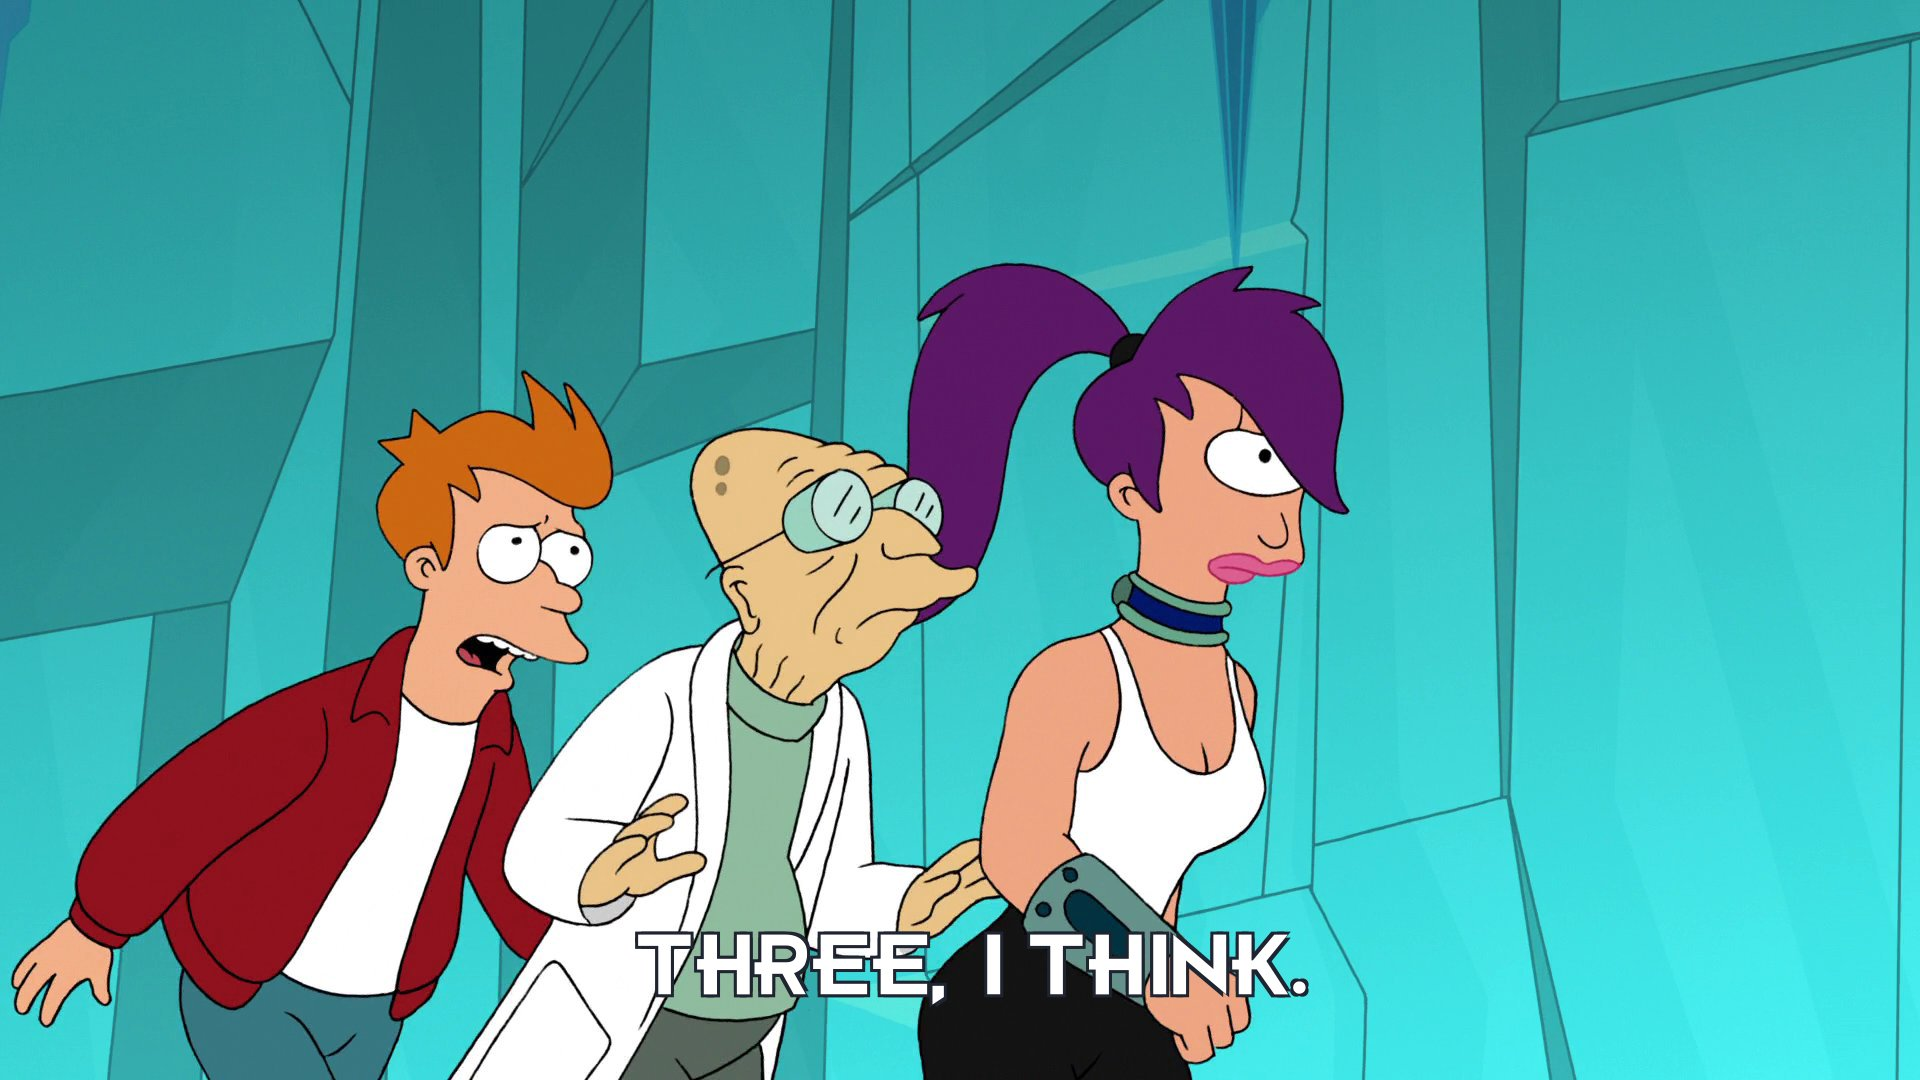 Philip J Fry: Three, I think.